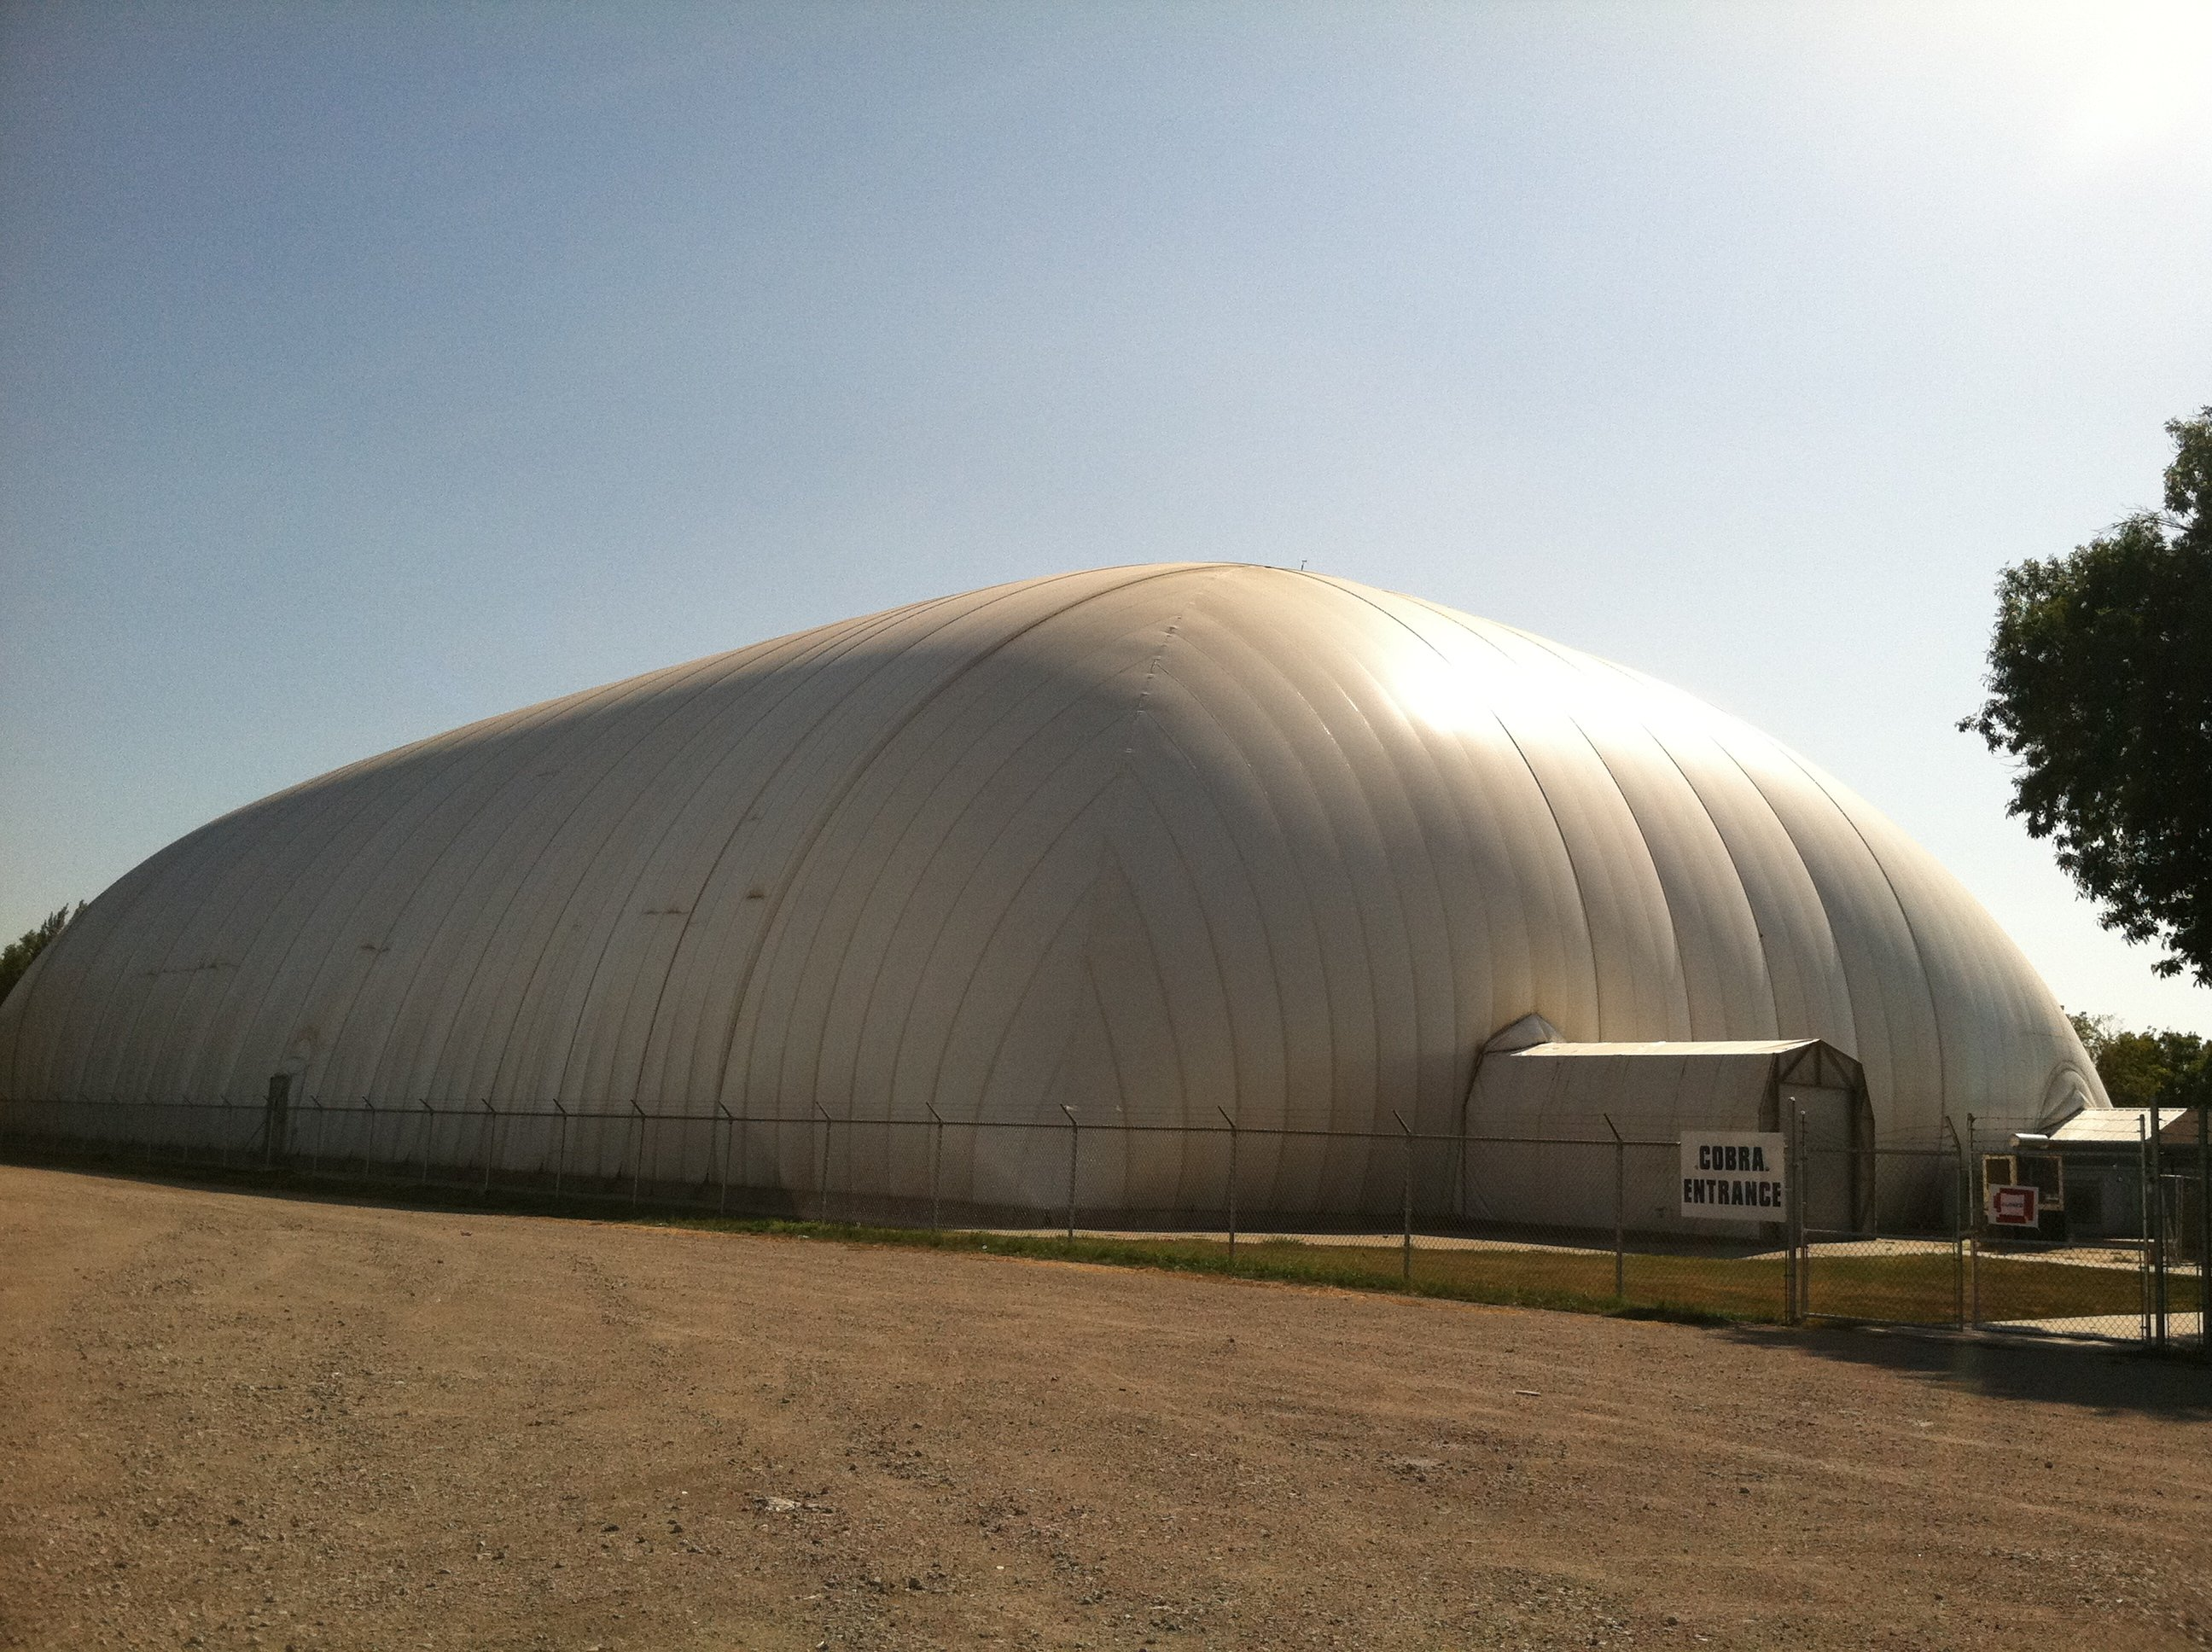 Briar Cliff University has acquired the athletic and golf dome, located in South Sioux City, Nebraska.